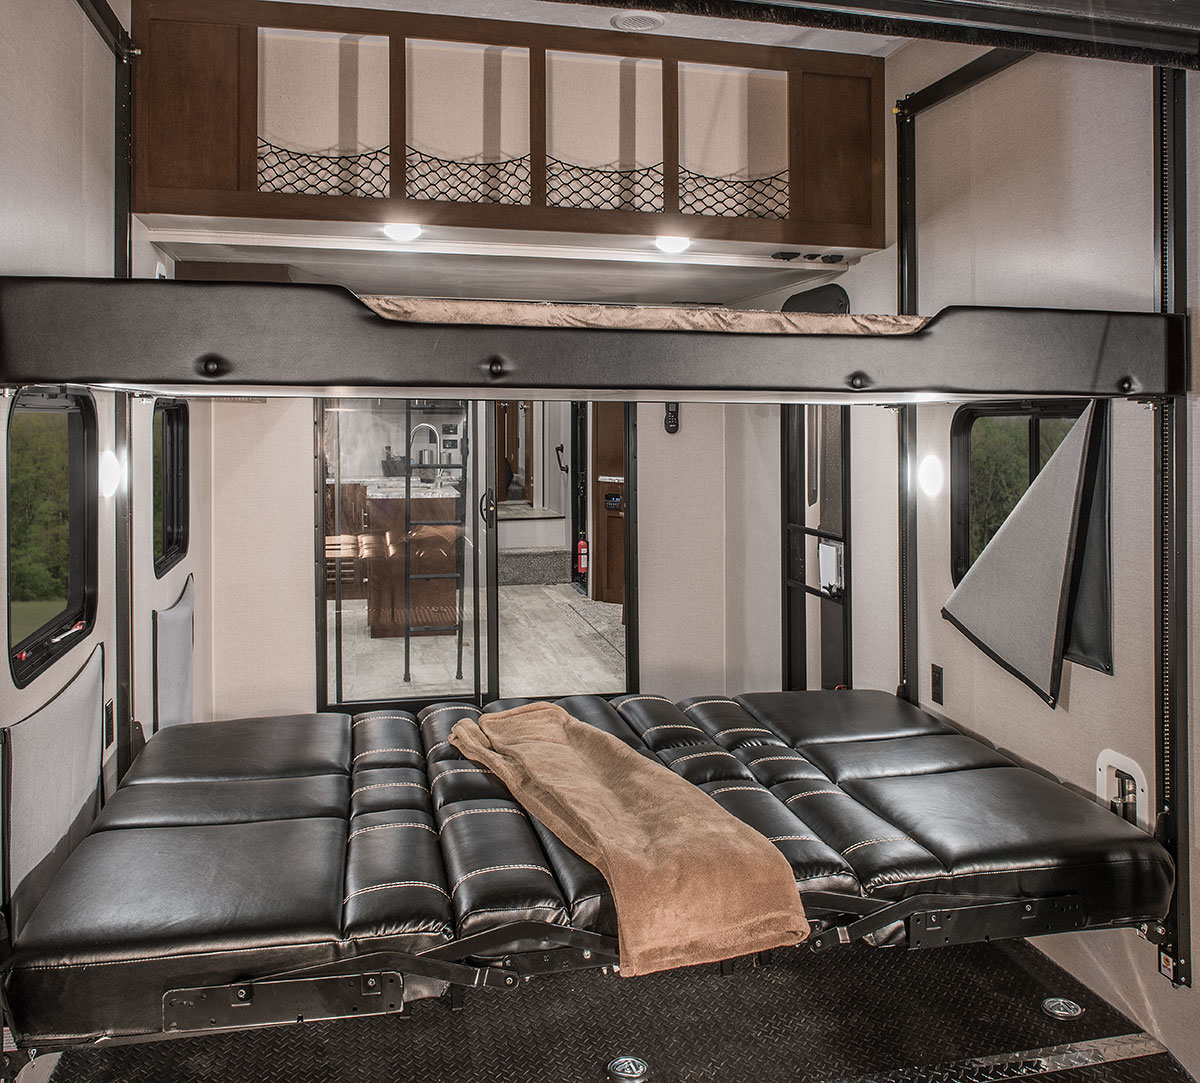 Used 5th Wheel Campers With Bunk Beds For Sale